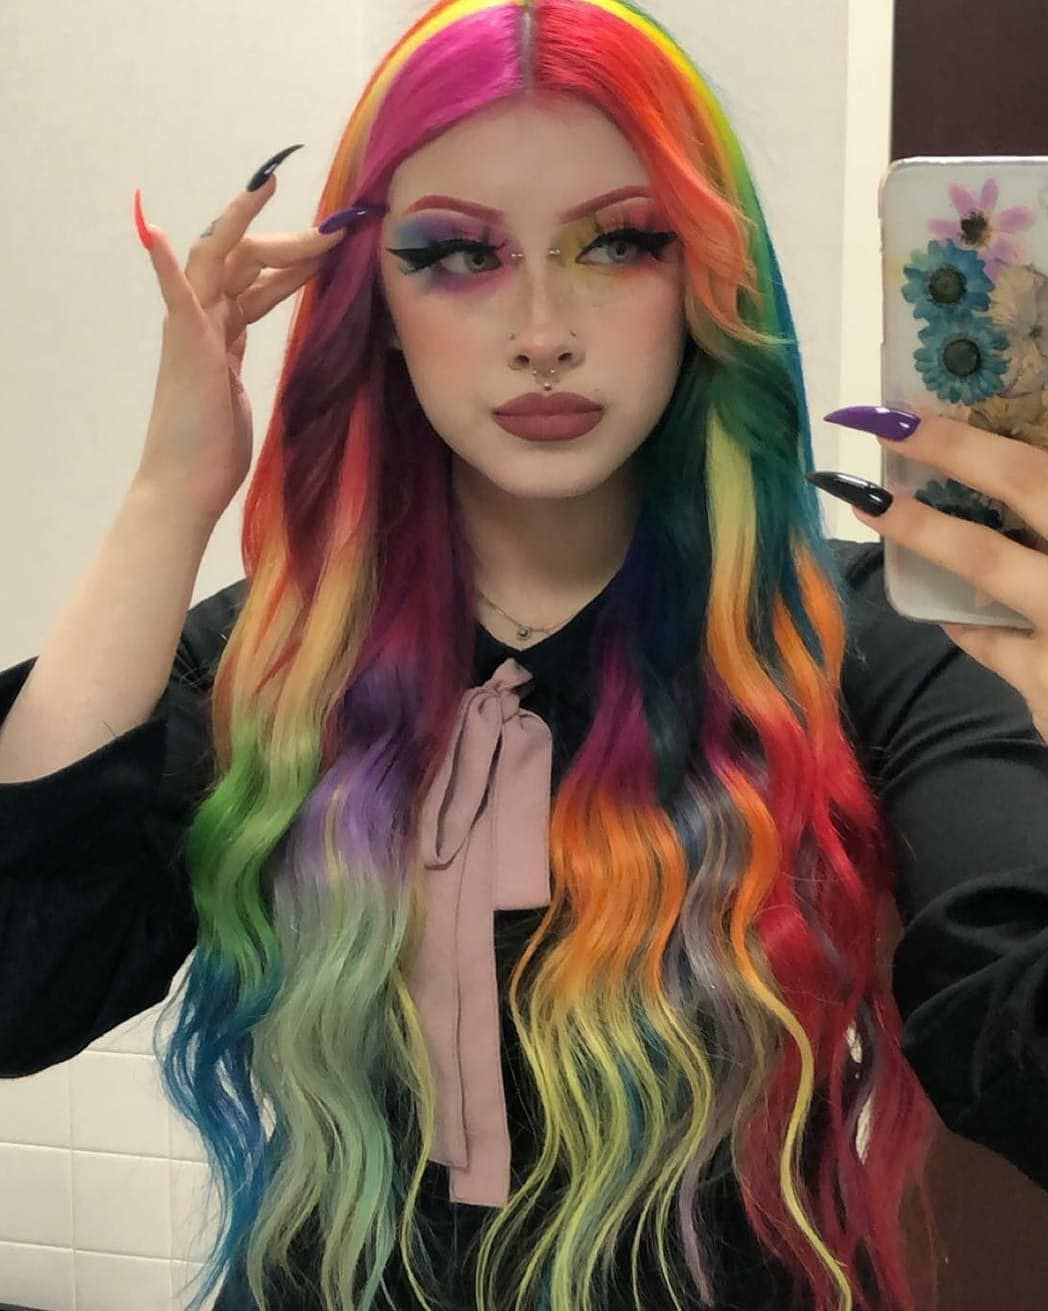 Alternative Fashion Alternativexfashion Posted On Instagram What Is Your Favorite Hair Make Up 1 2 3 In 2020 Scene Hair Colors Hair Inspo Color Aesthetic Hair